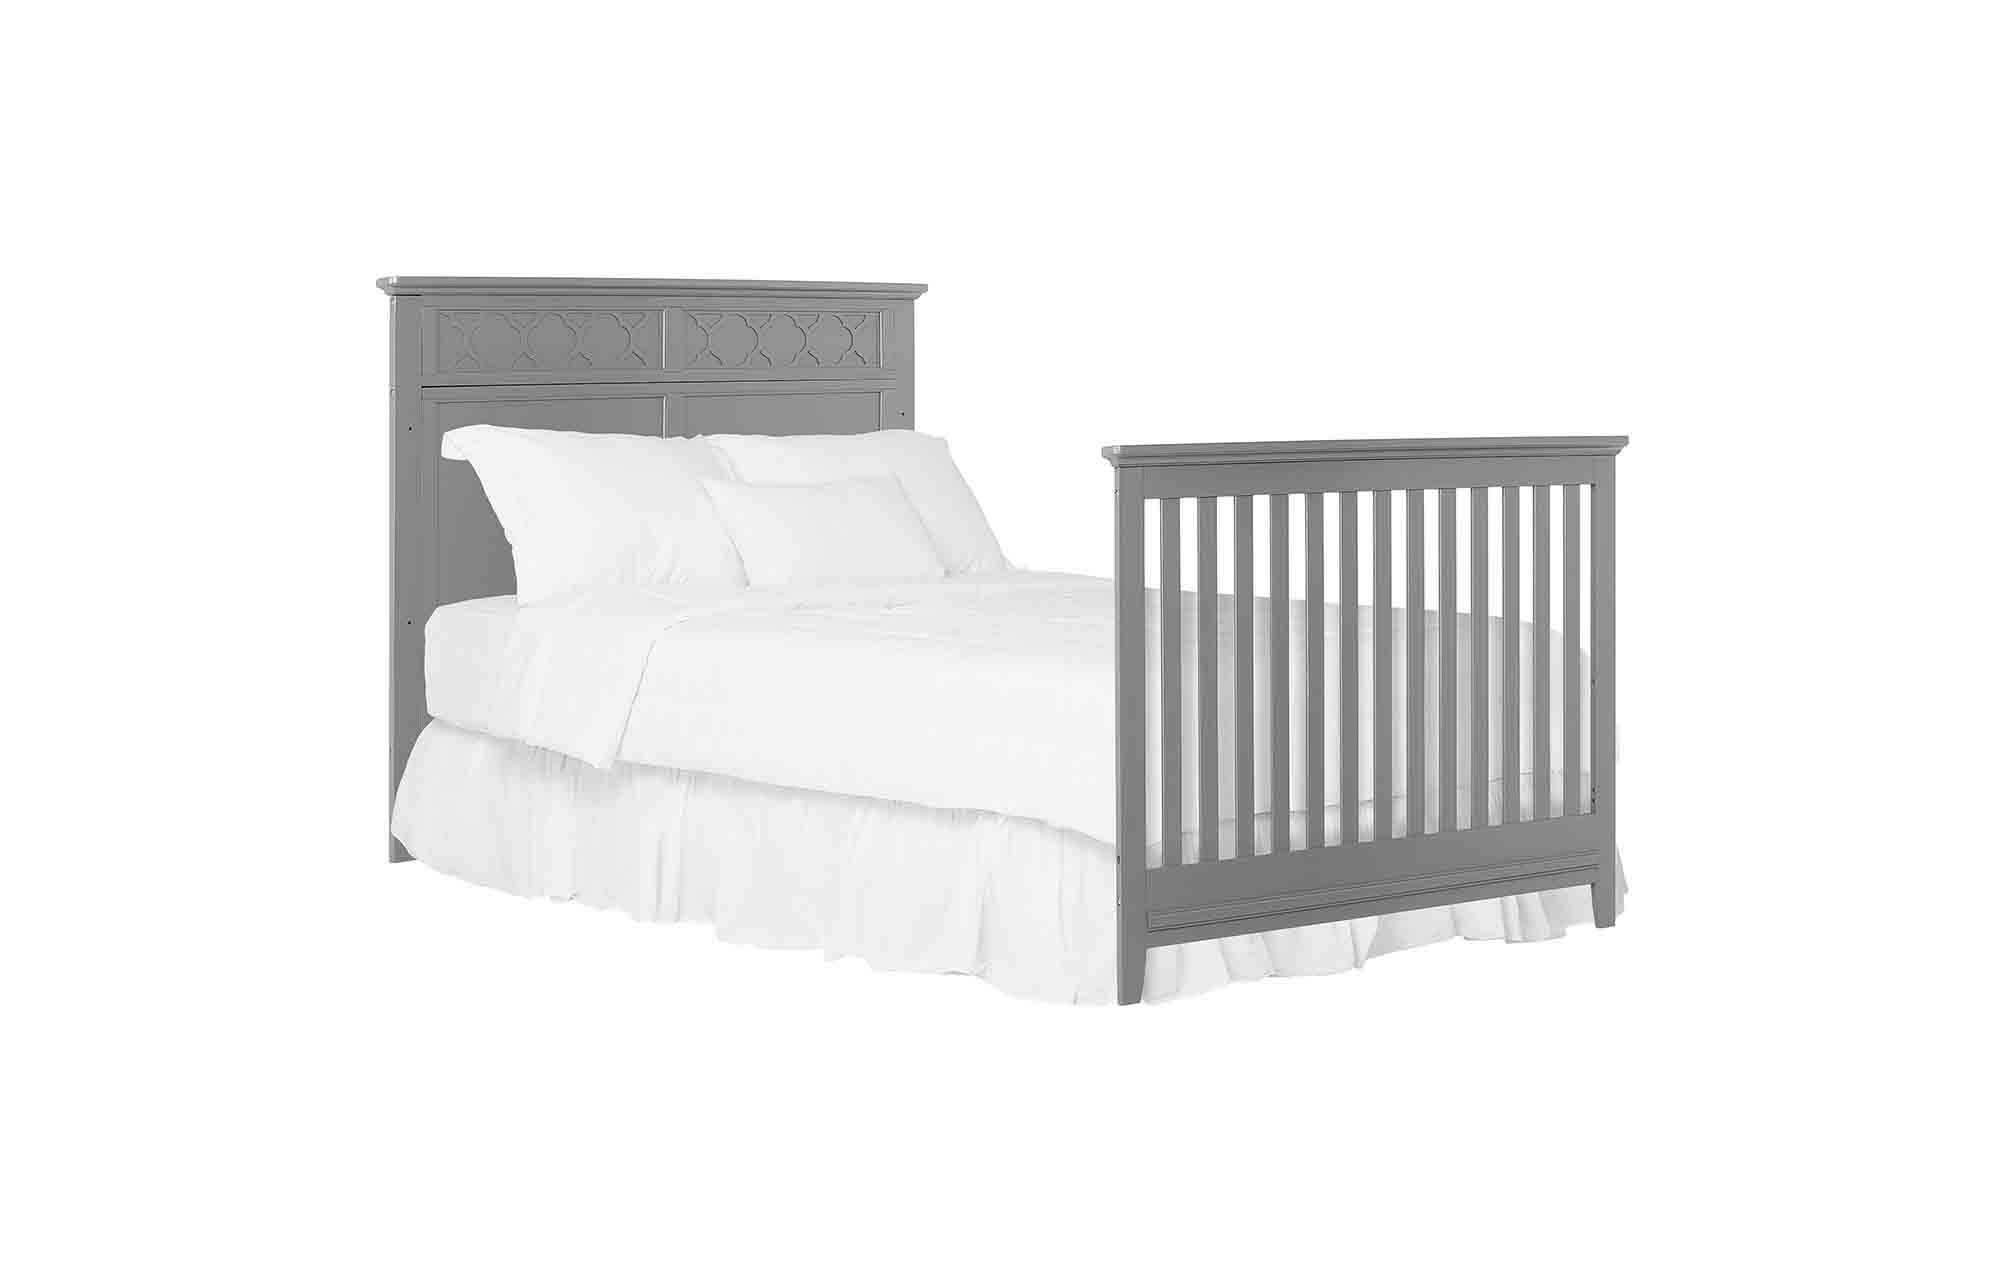 774-SGY Harper Full-Size Bed with Footboard